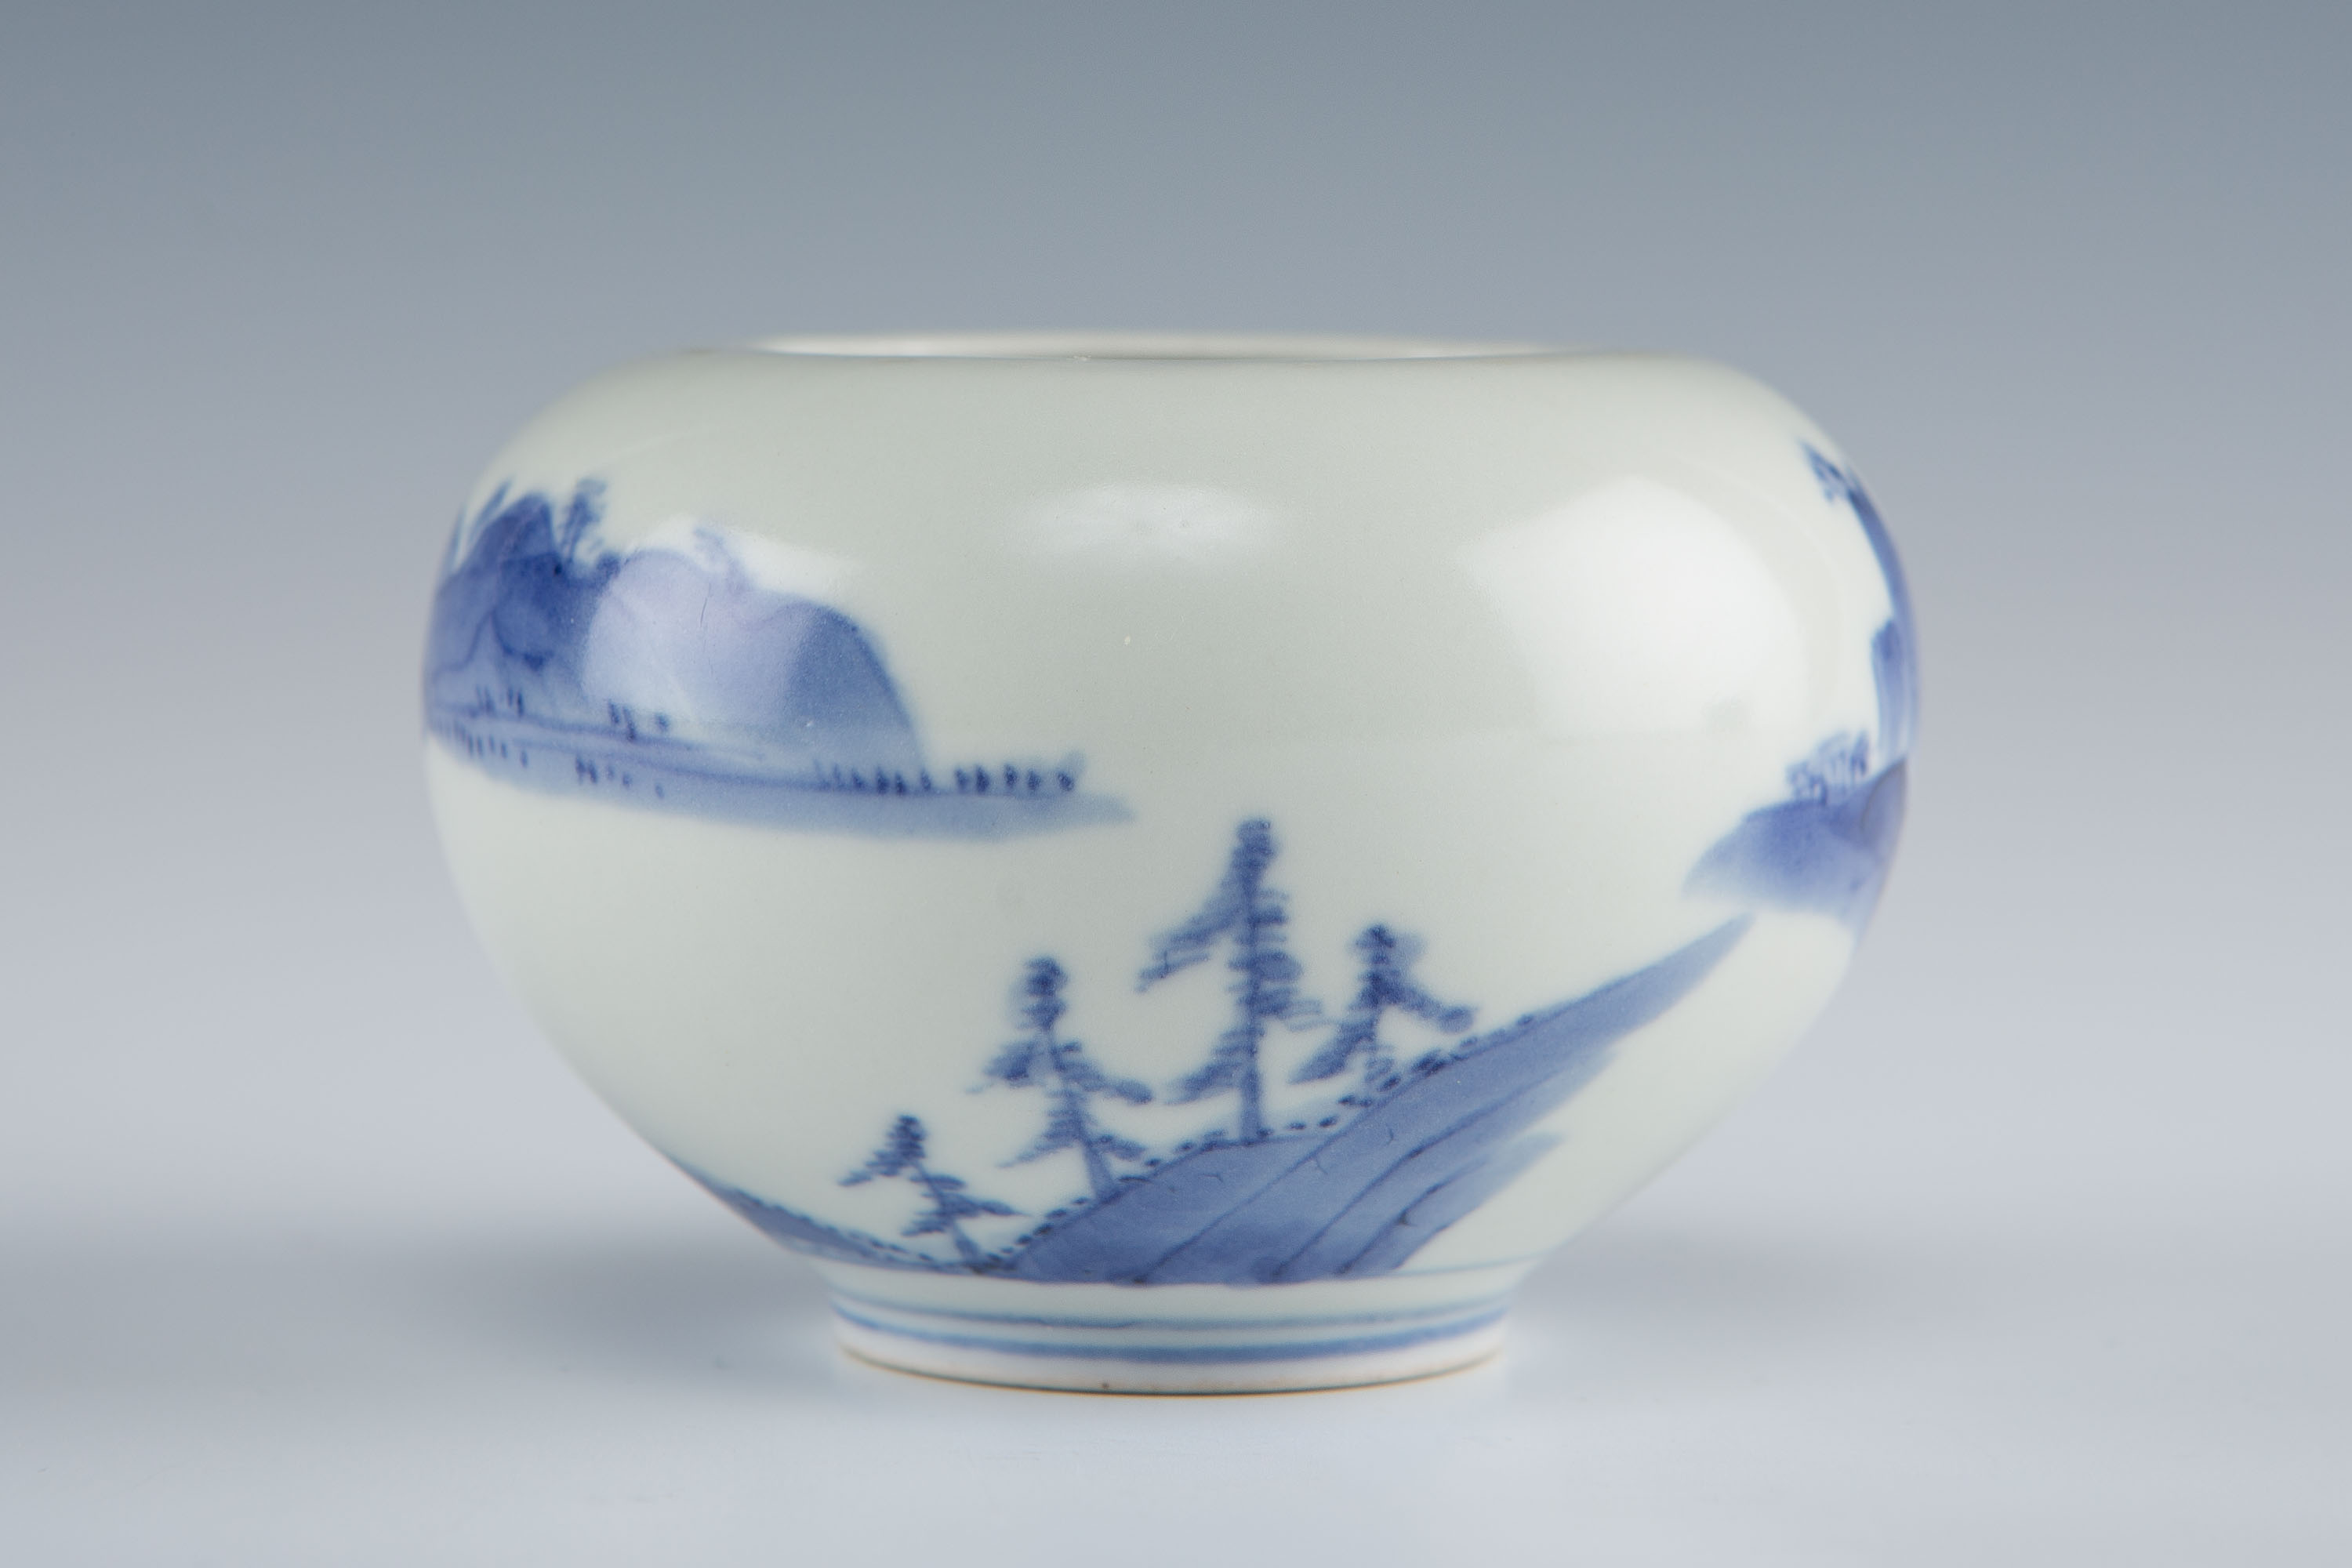 Three similar Arita or Mikawachi globular blue and white jarlets, probably 18th Century.